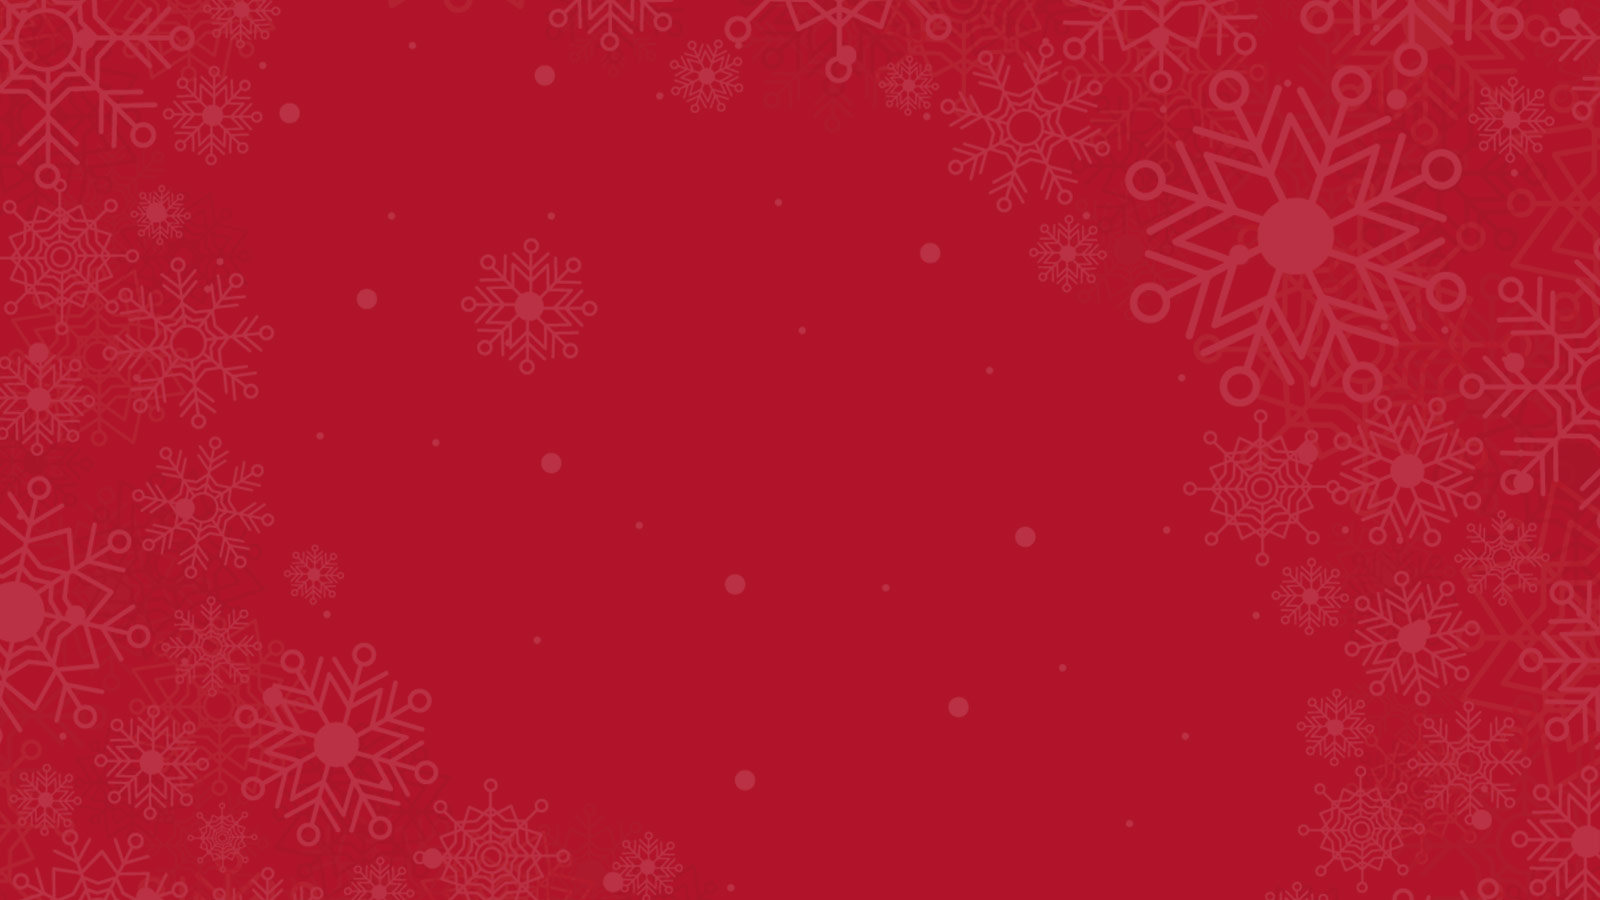 Red Snowflake Background Visually Impaired Preschool